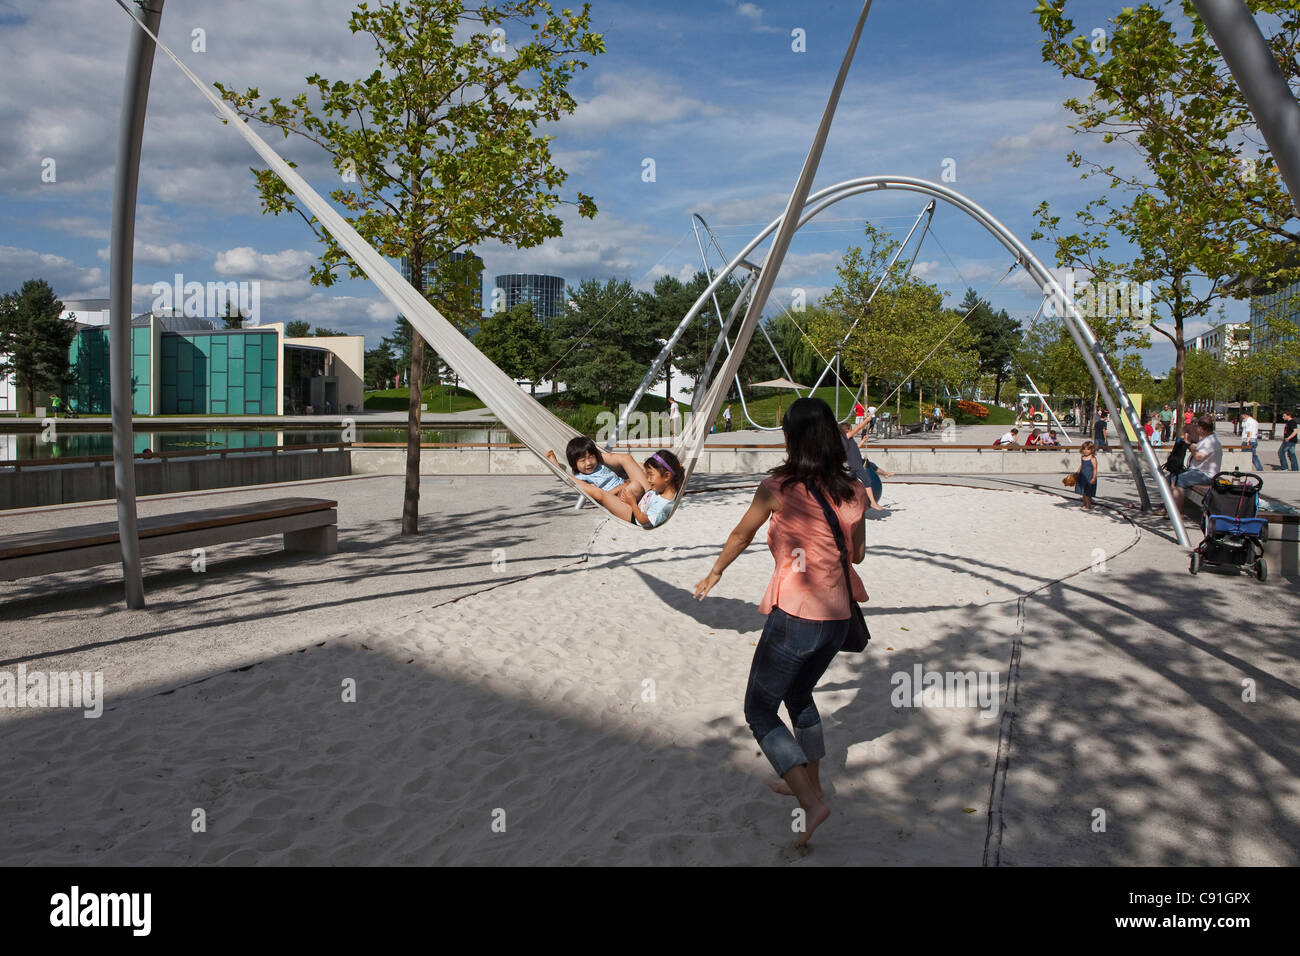 Children in a swing, playground at the Volkswagen Autostadt park, Wolfsburg, Lower Saxony, Germany - Stock Image